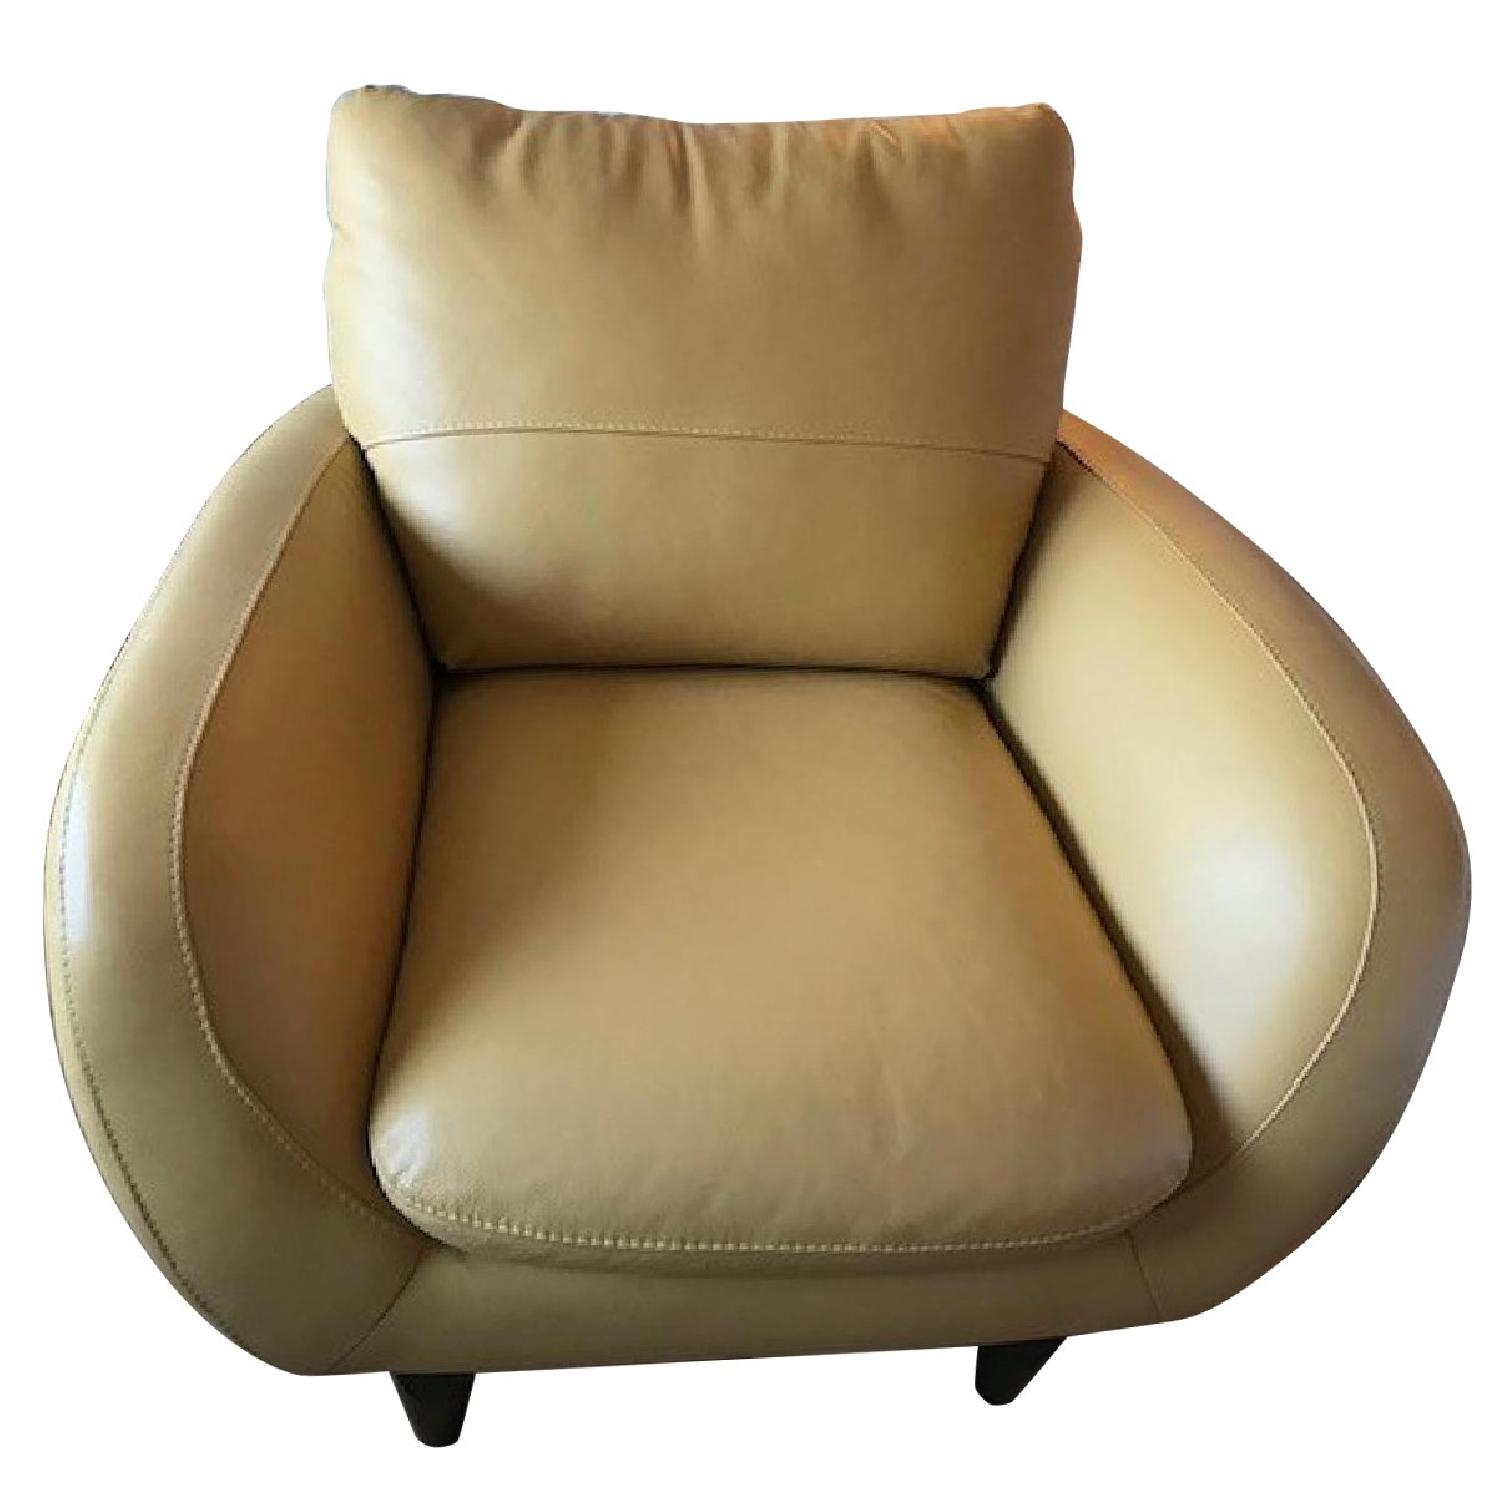 Macy's Italsofa Accent Chair